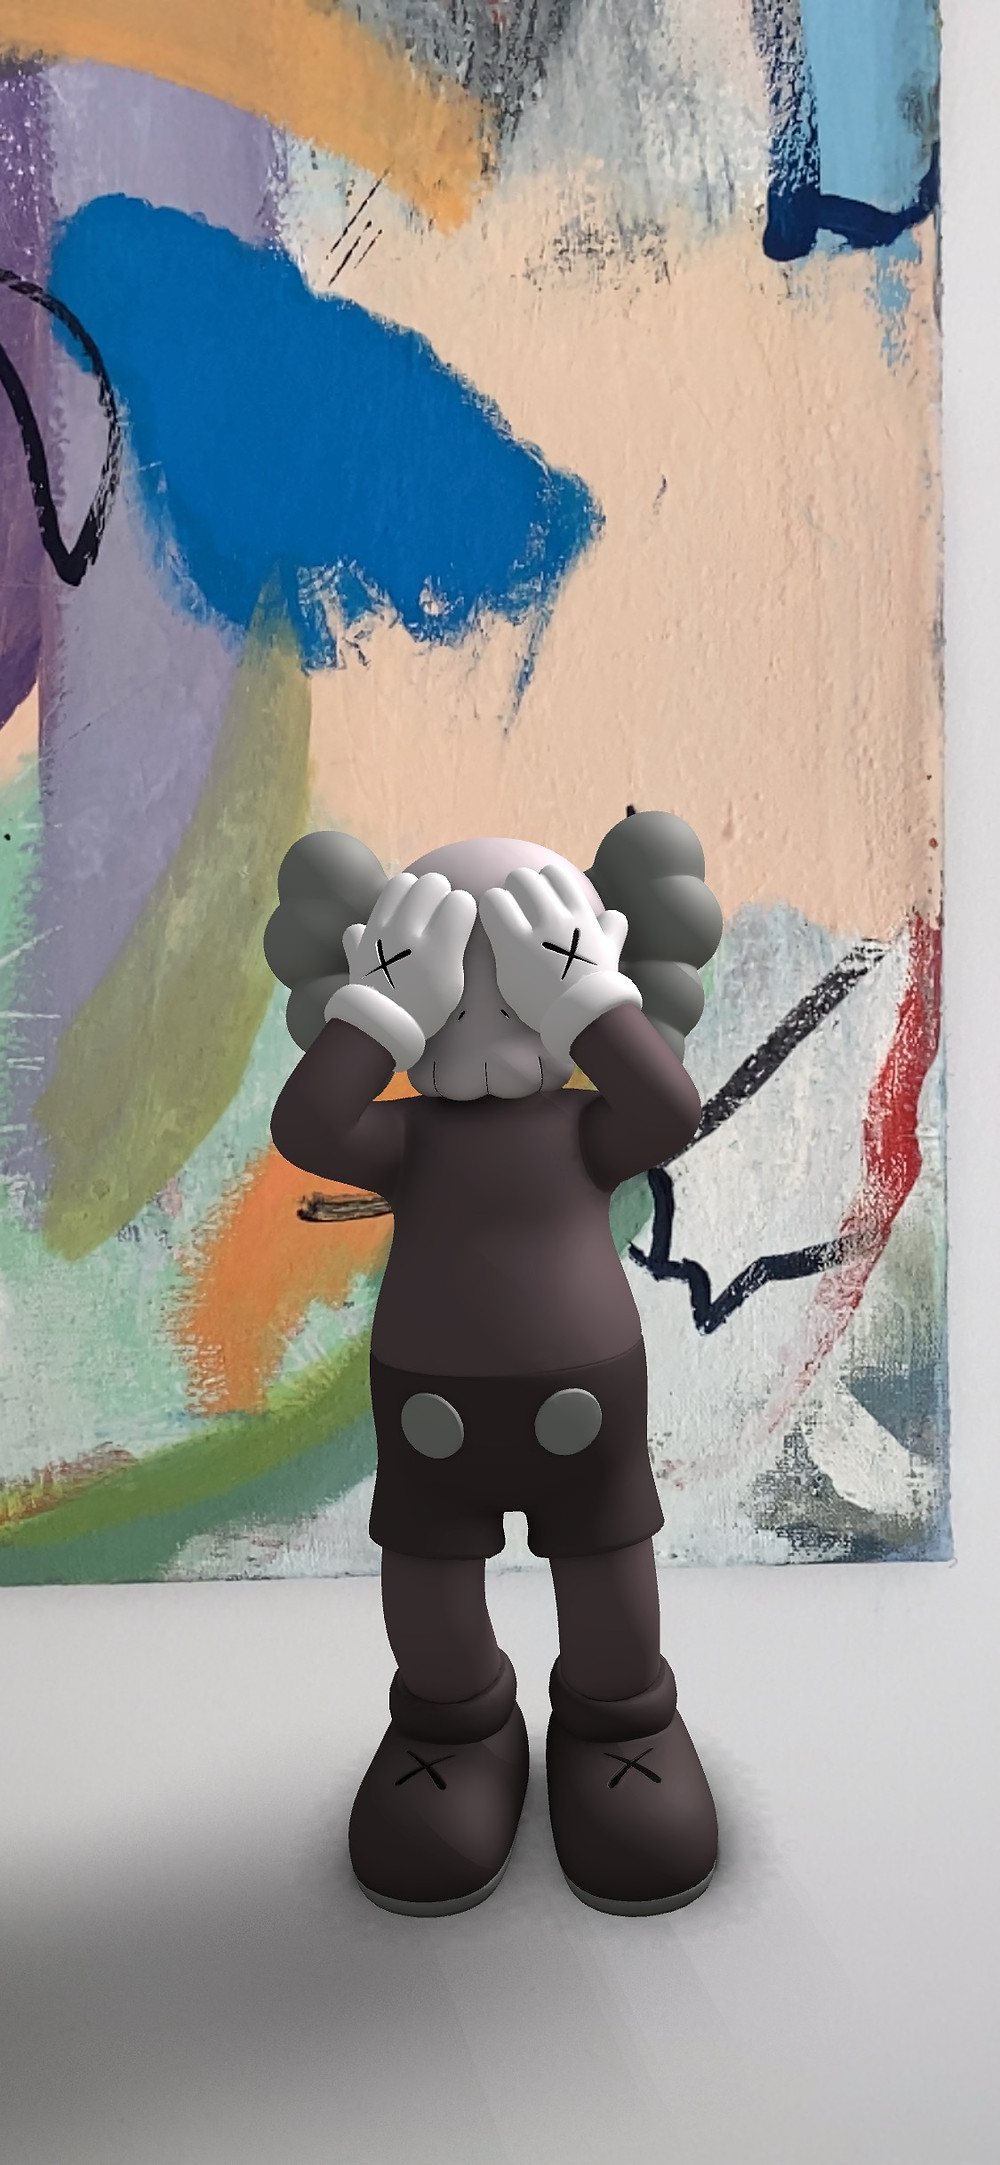 AT HIS TIME (EXPANDED) AR Sculpture by KAWS in front of painting by Sophie Heinrich